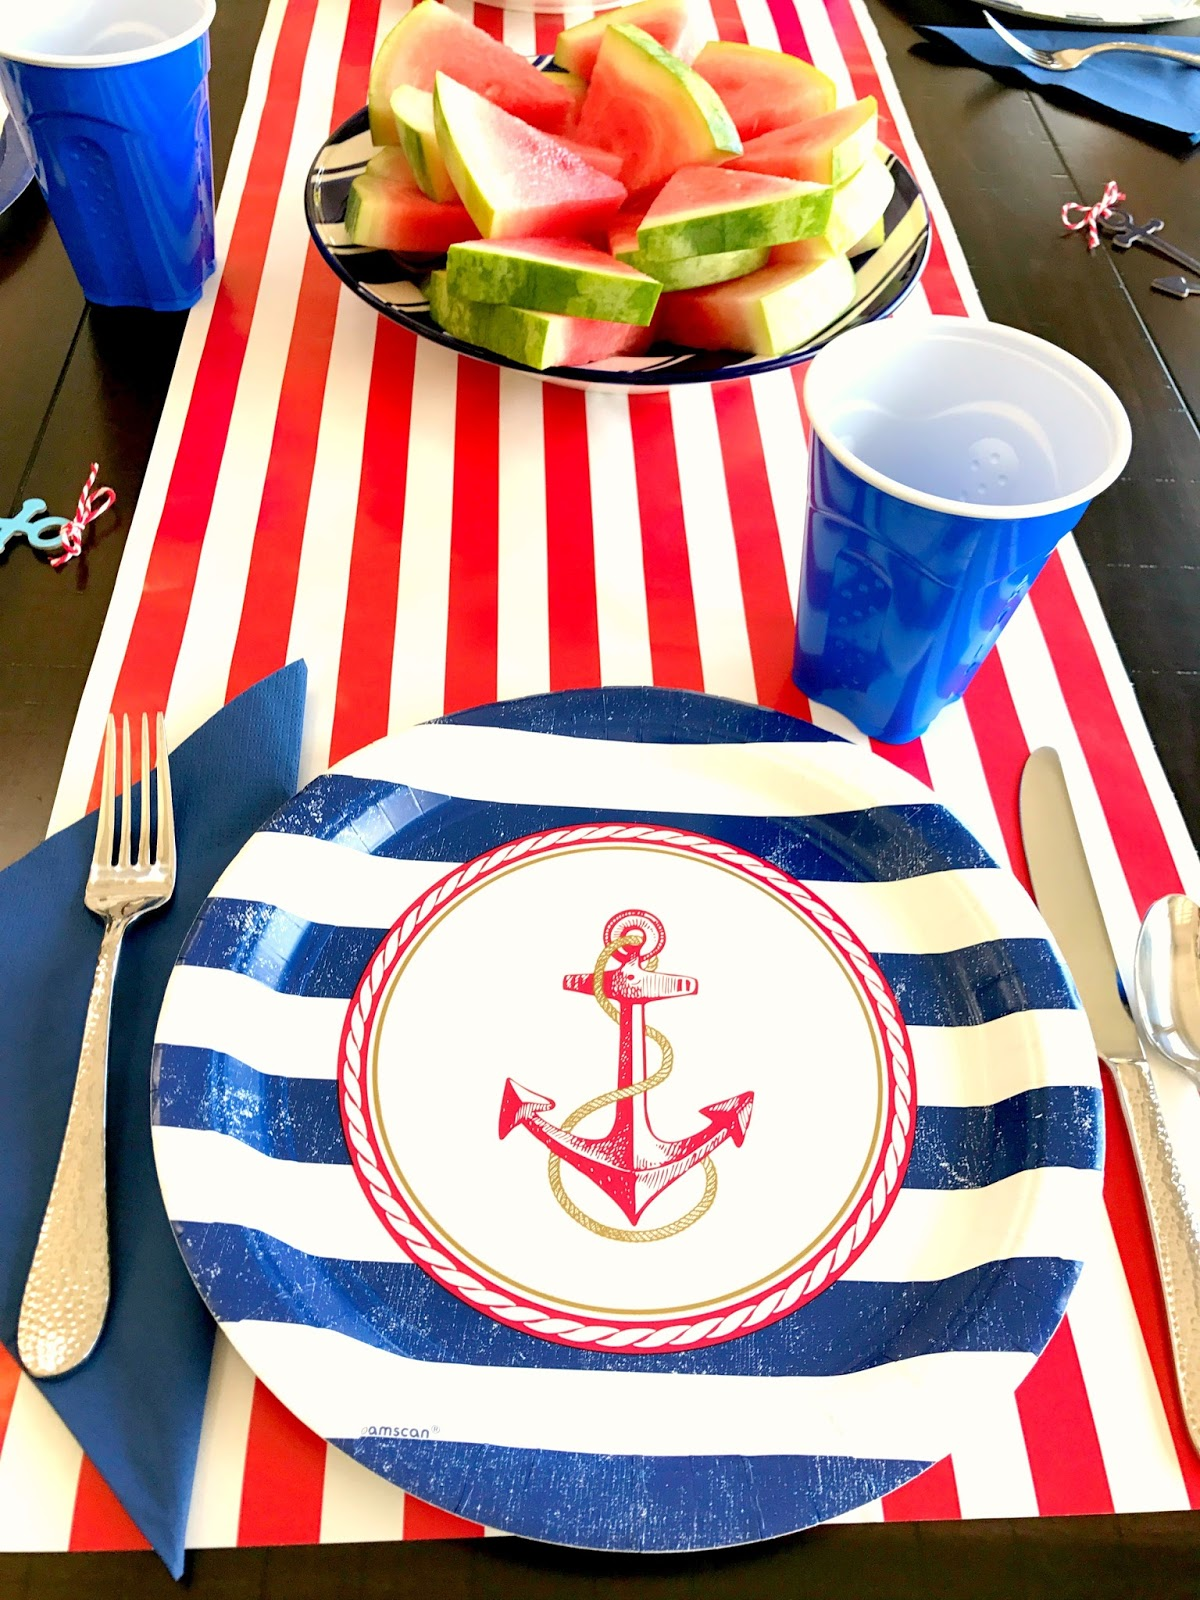 anchor themed party noahseclectic 35th Birthday Decoration Ideas michelle paige blogs anchor themed birthday party